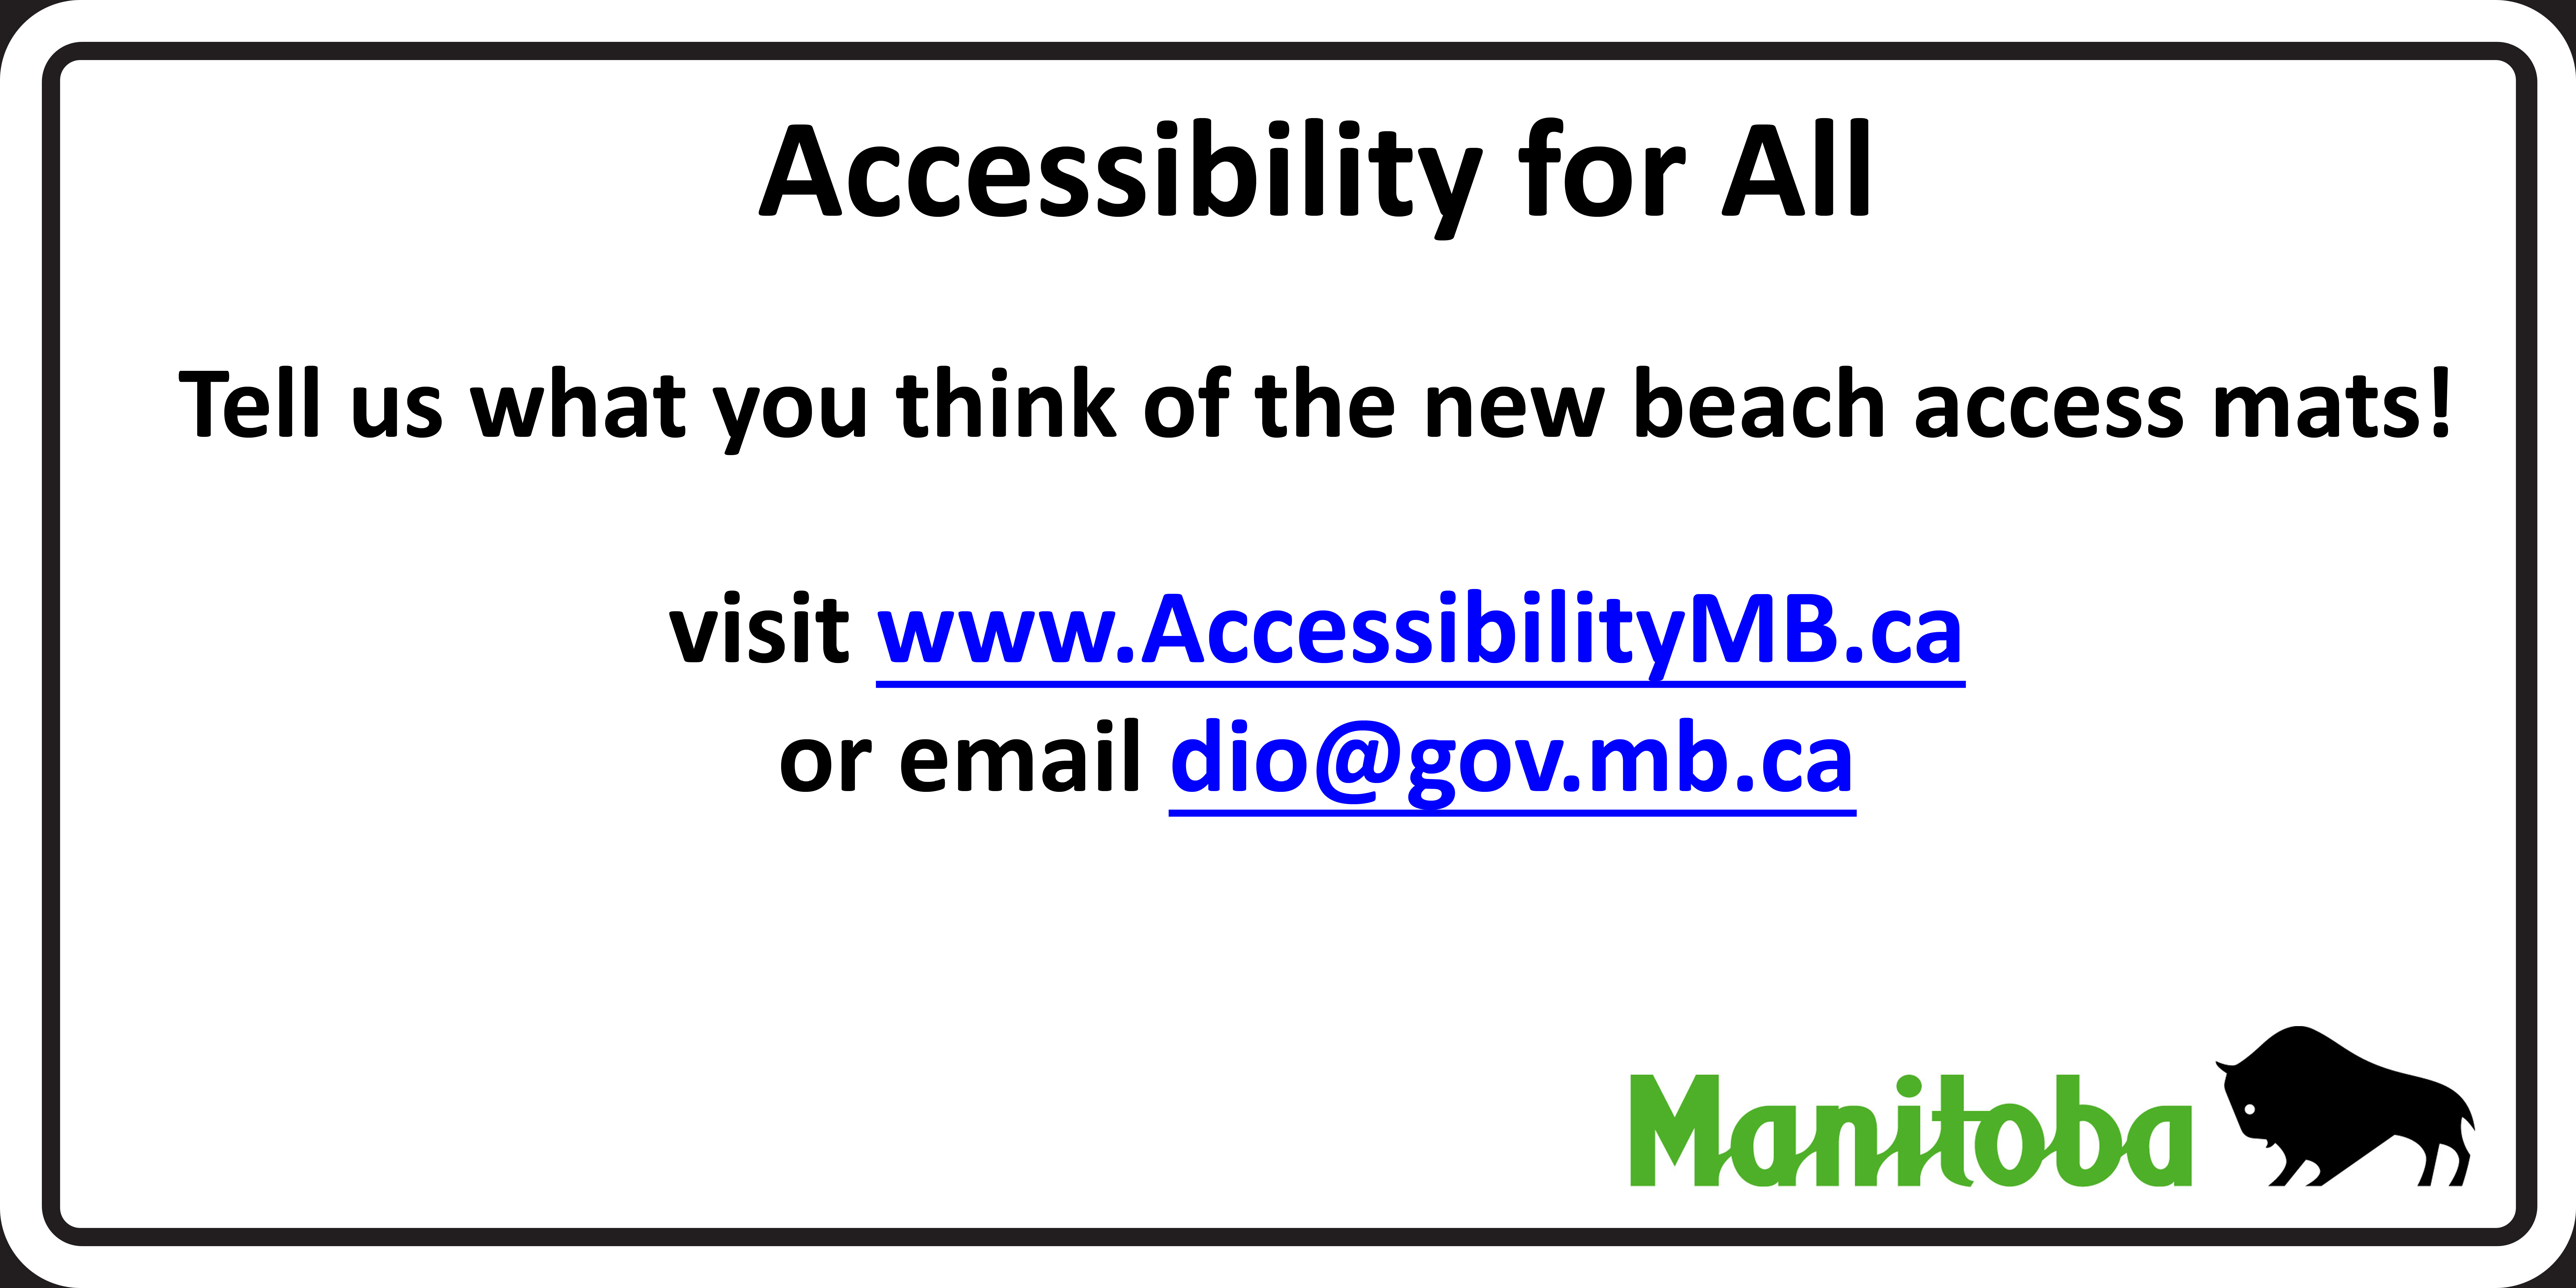 Tell us what you think of the new beach access mats